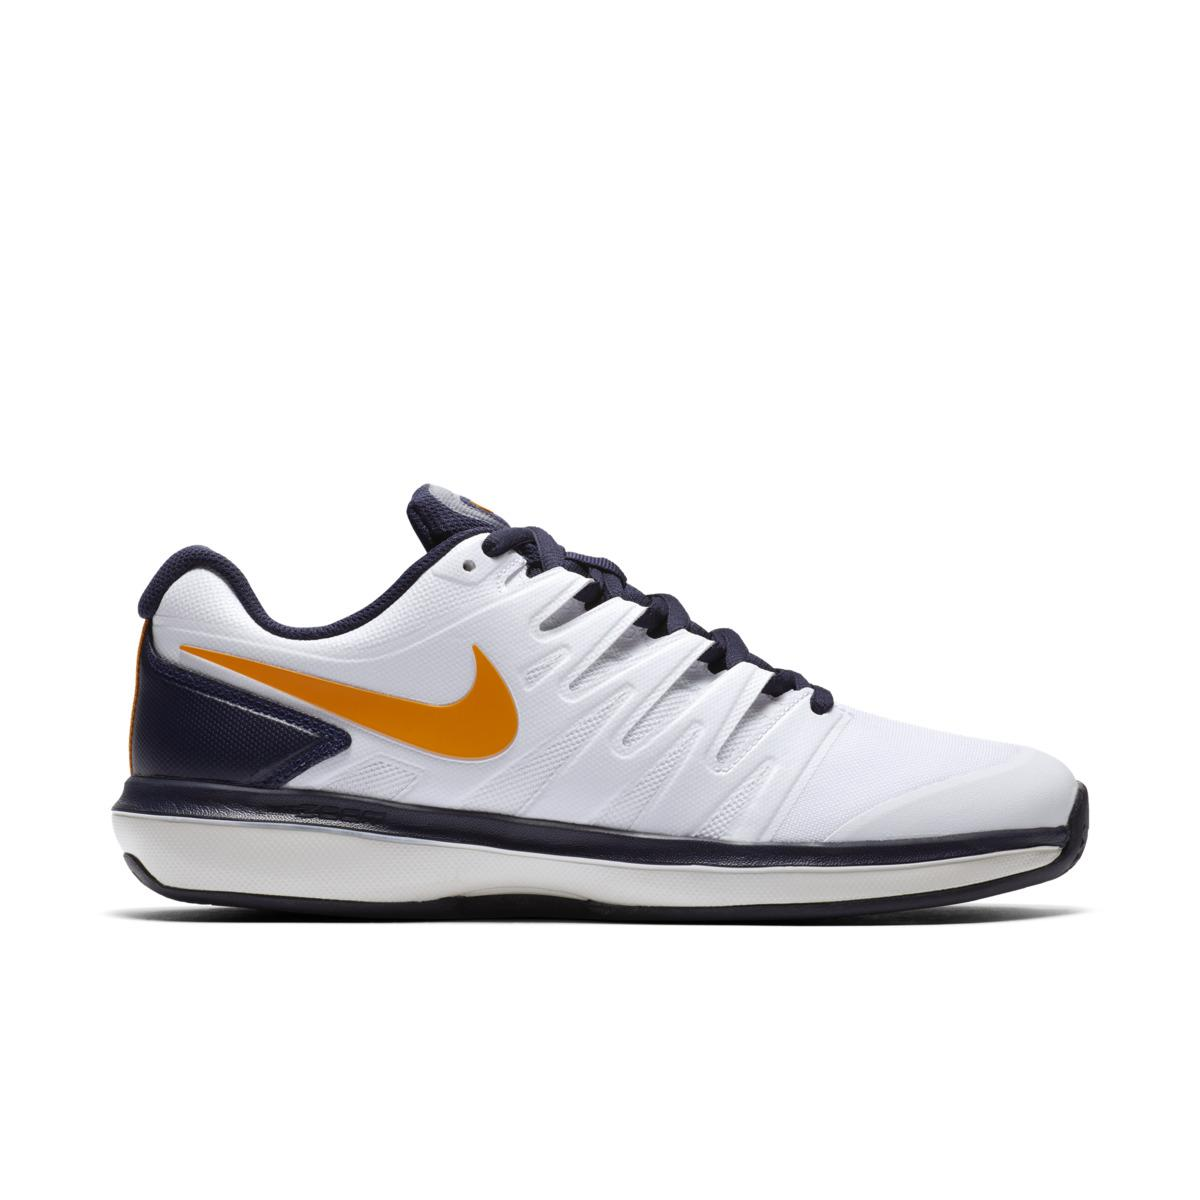 c6d816bb58ec8 Lyst - Nike Air Zoom Prestige Clay Tennis Shoe in White for Men